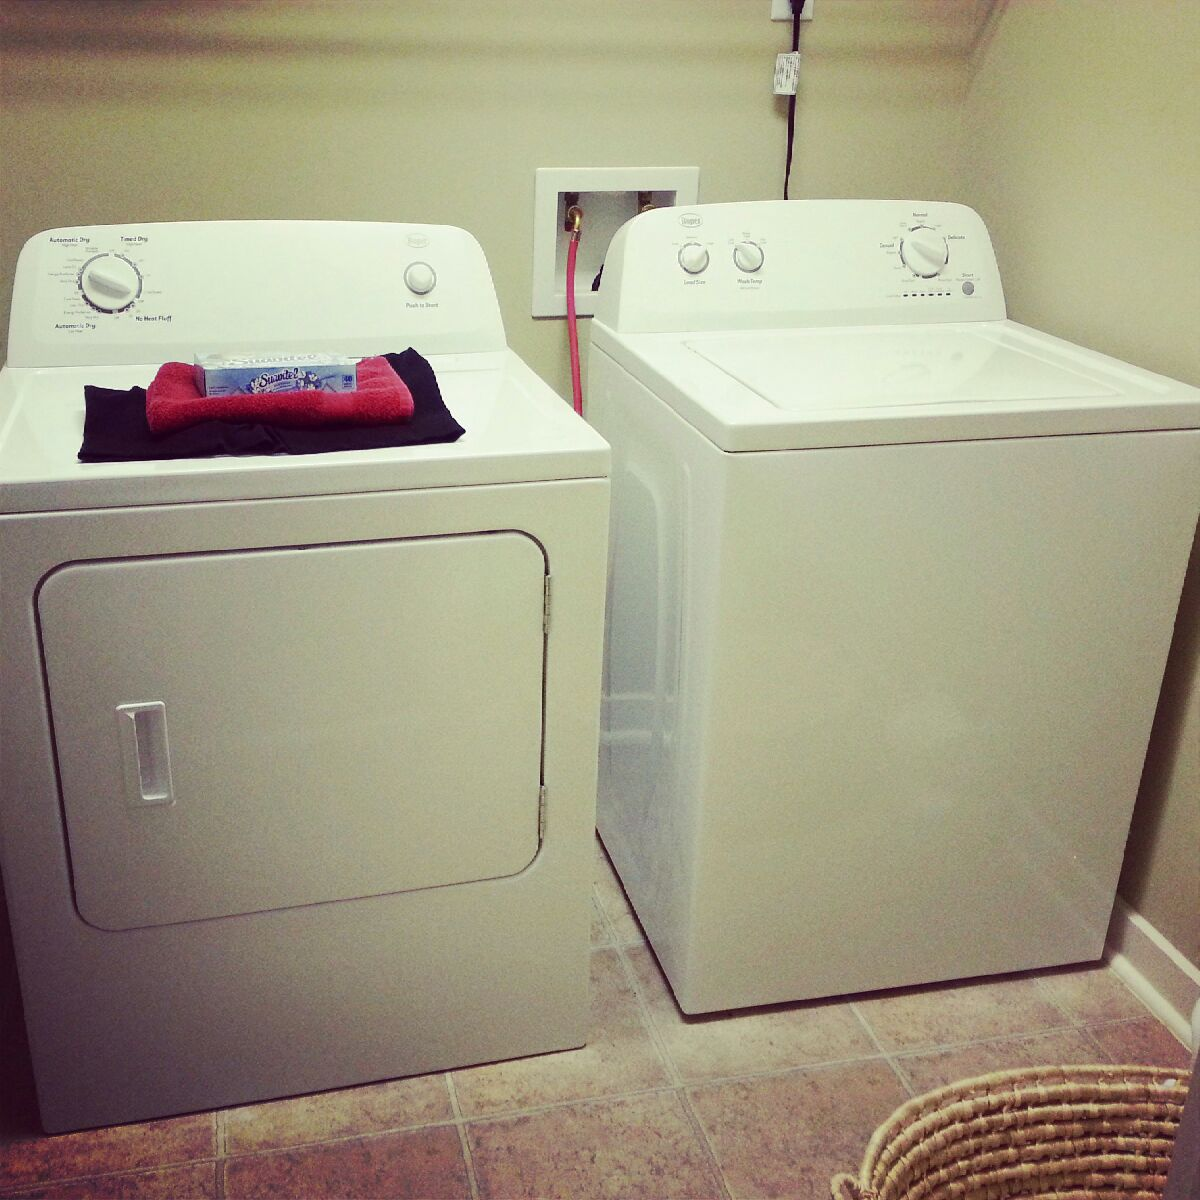 First load in my new washer and dryer!